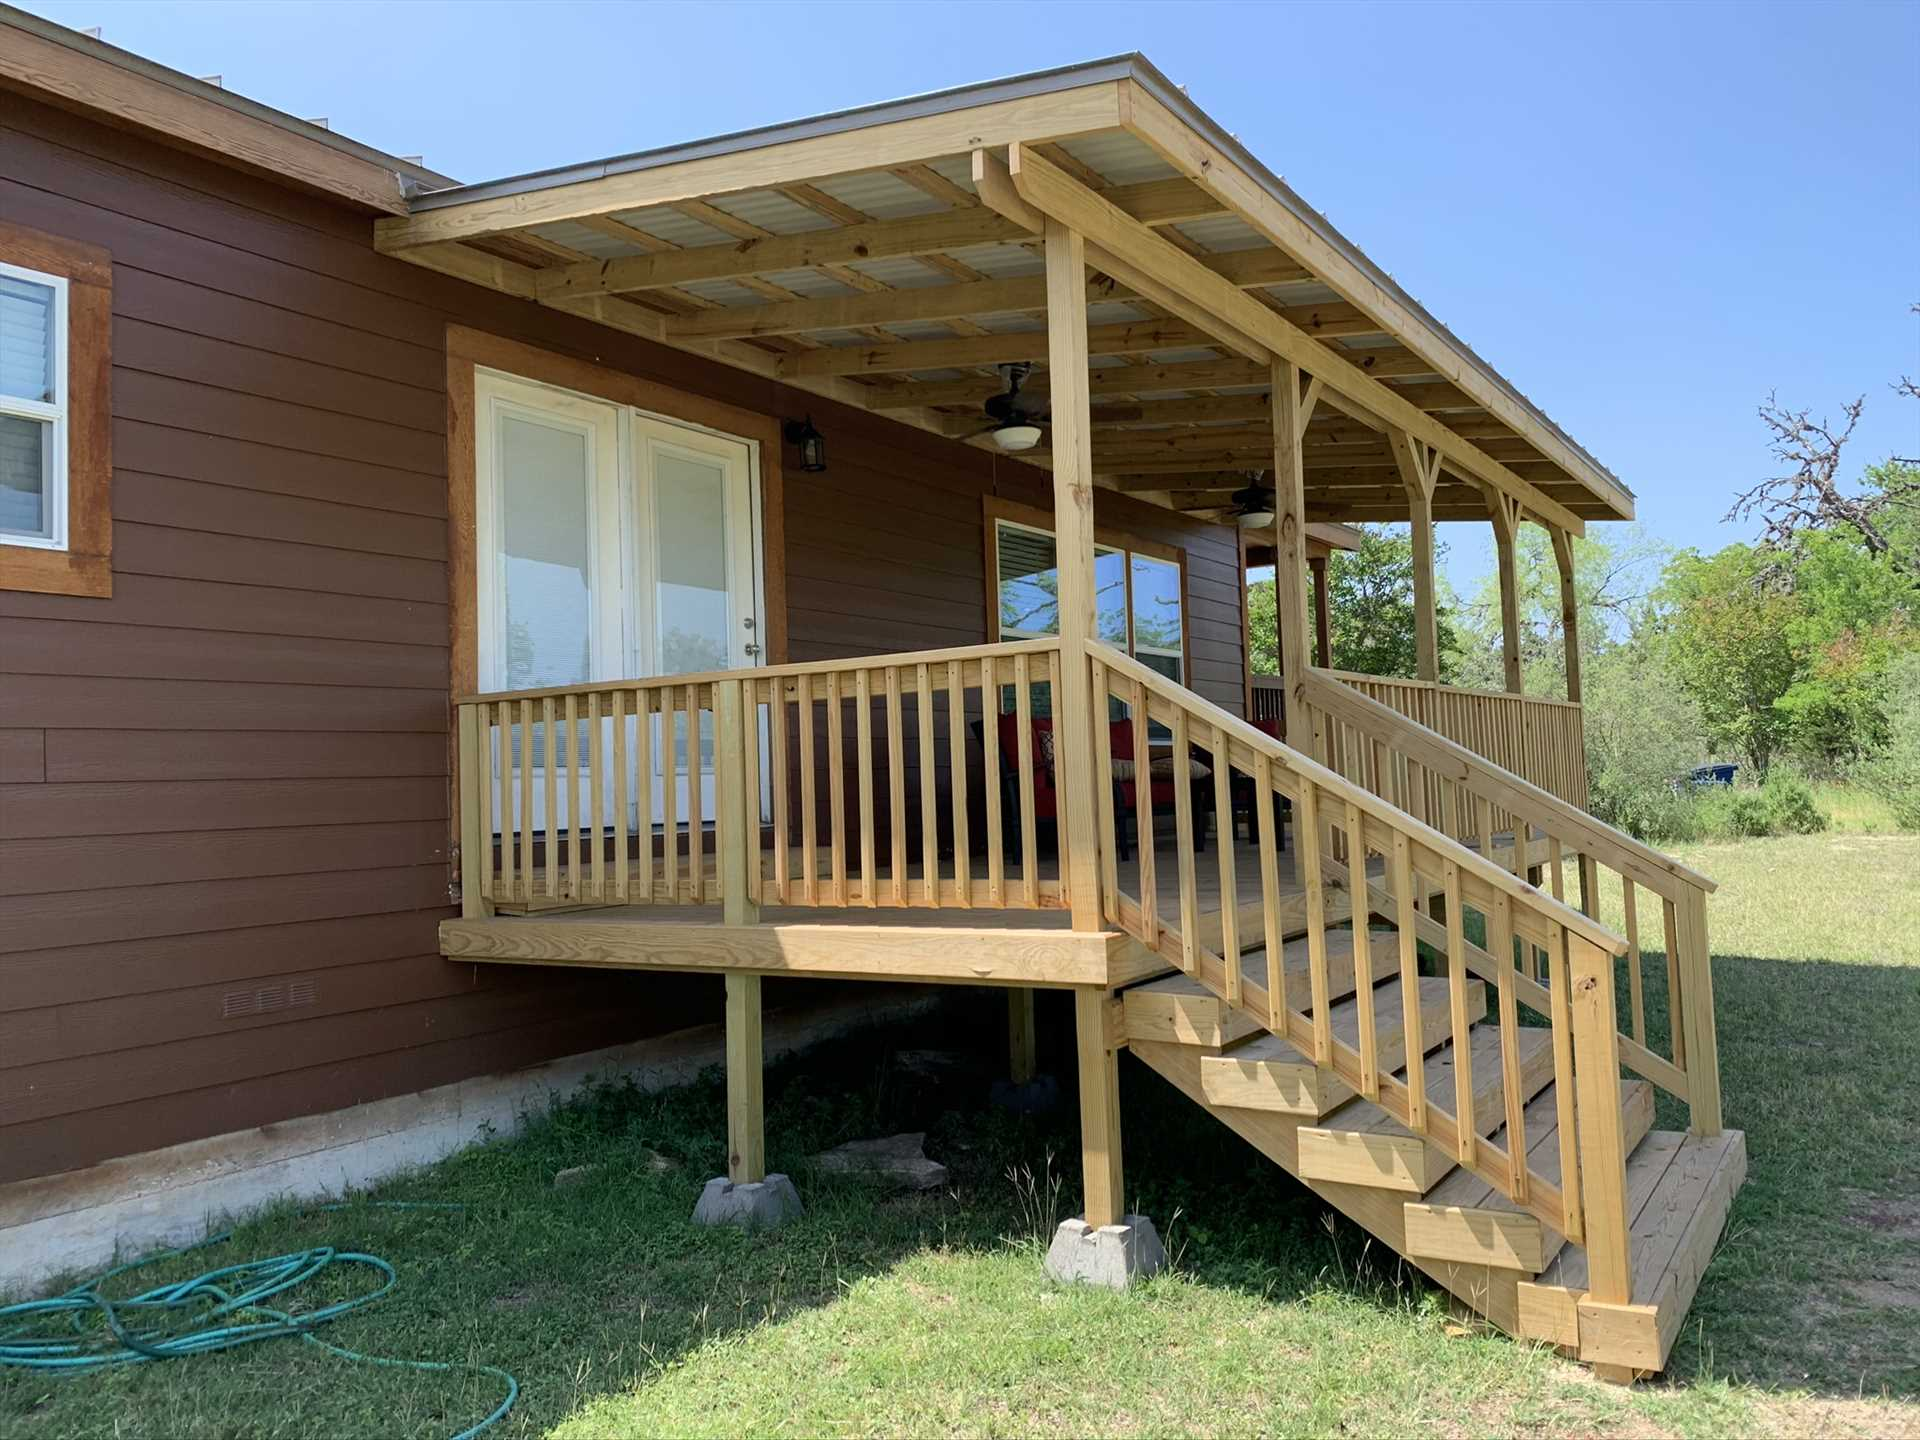 The brand-new deck is nicely shaded, and offers outstanding views of wildlife and the surrounding Hill Country.